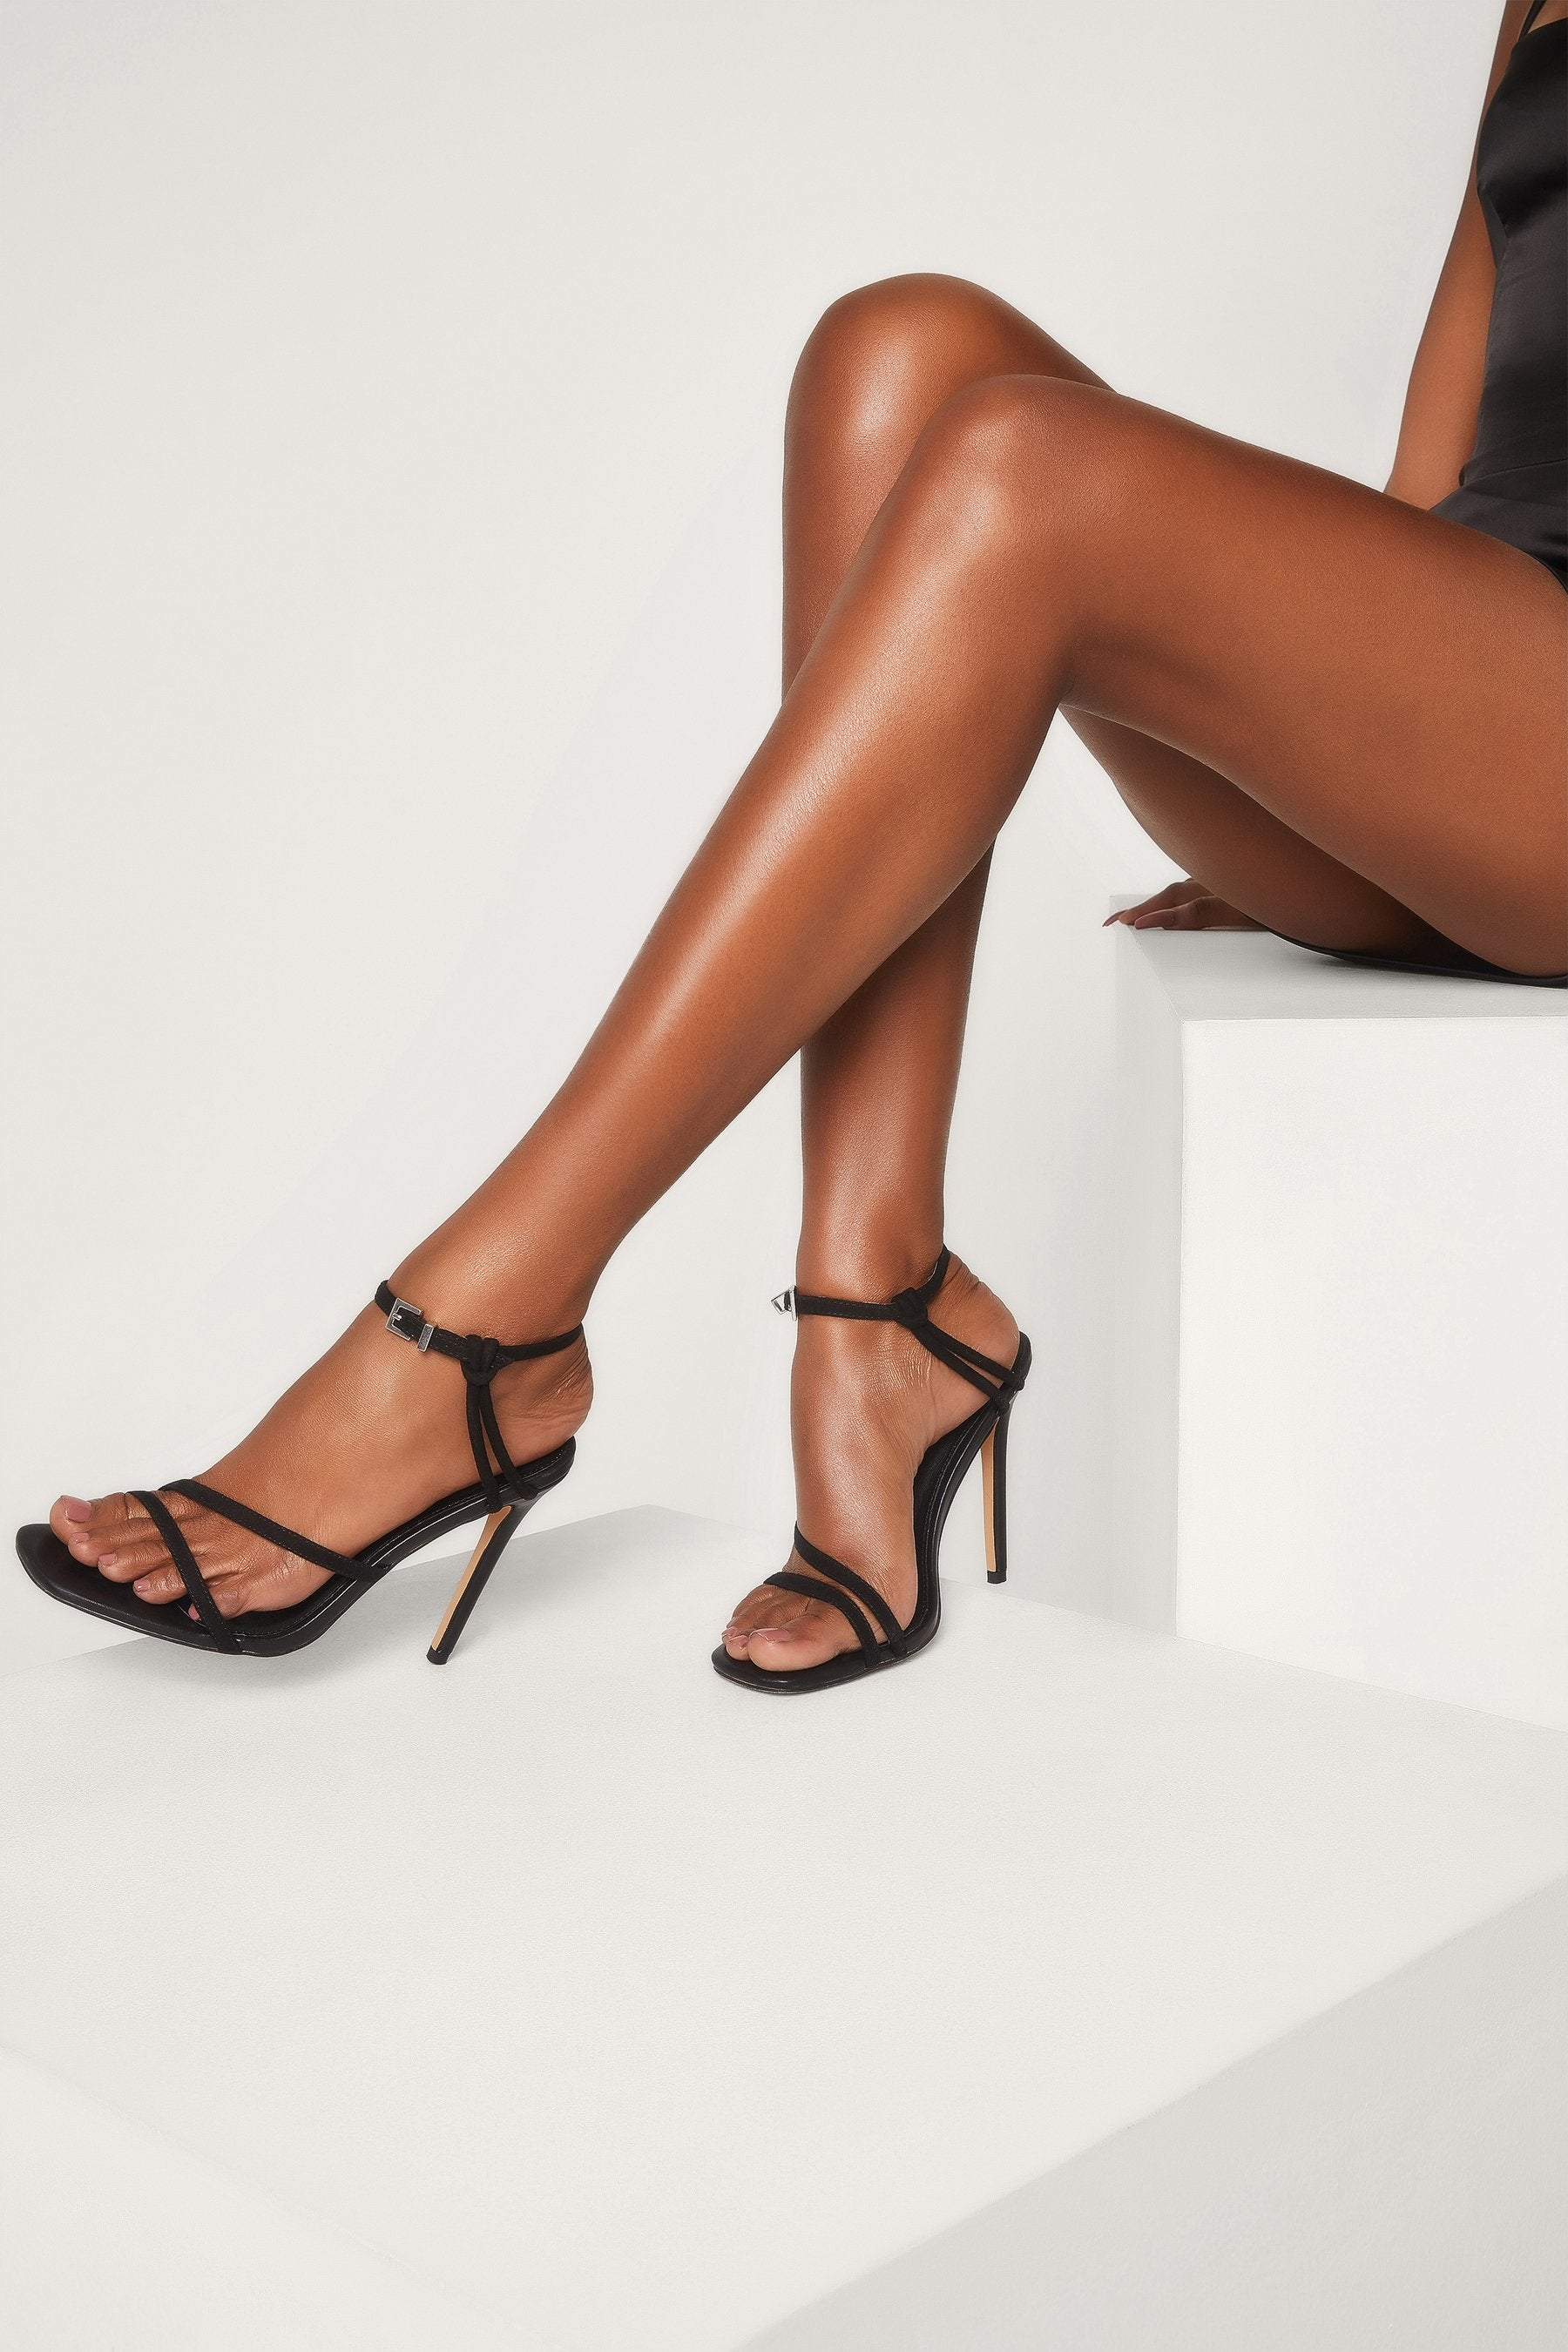 Dimity Strappy High Heel Sandals Black